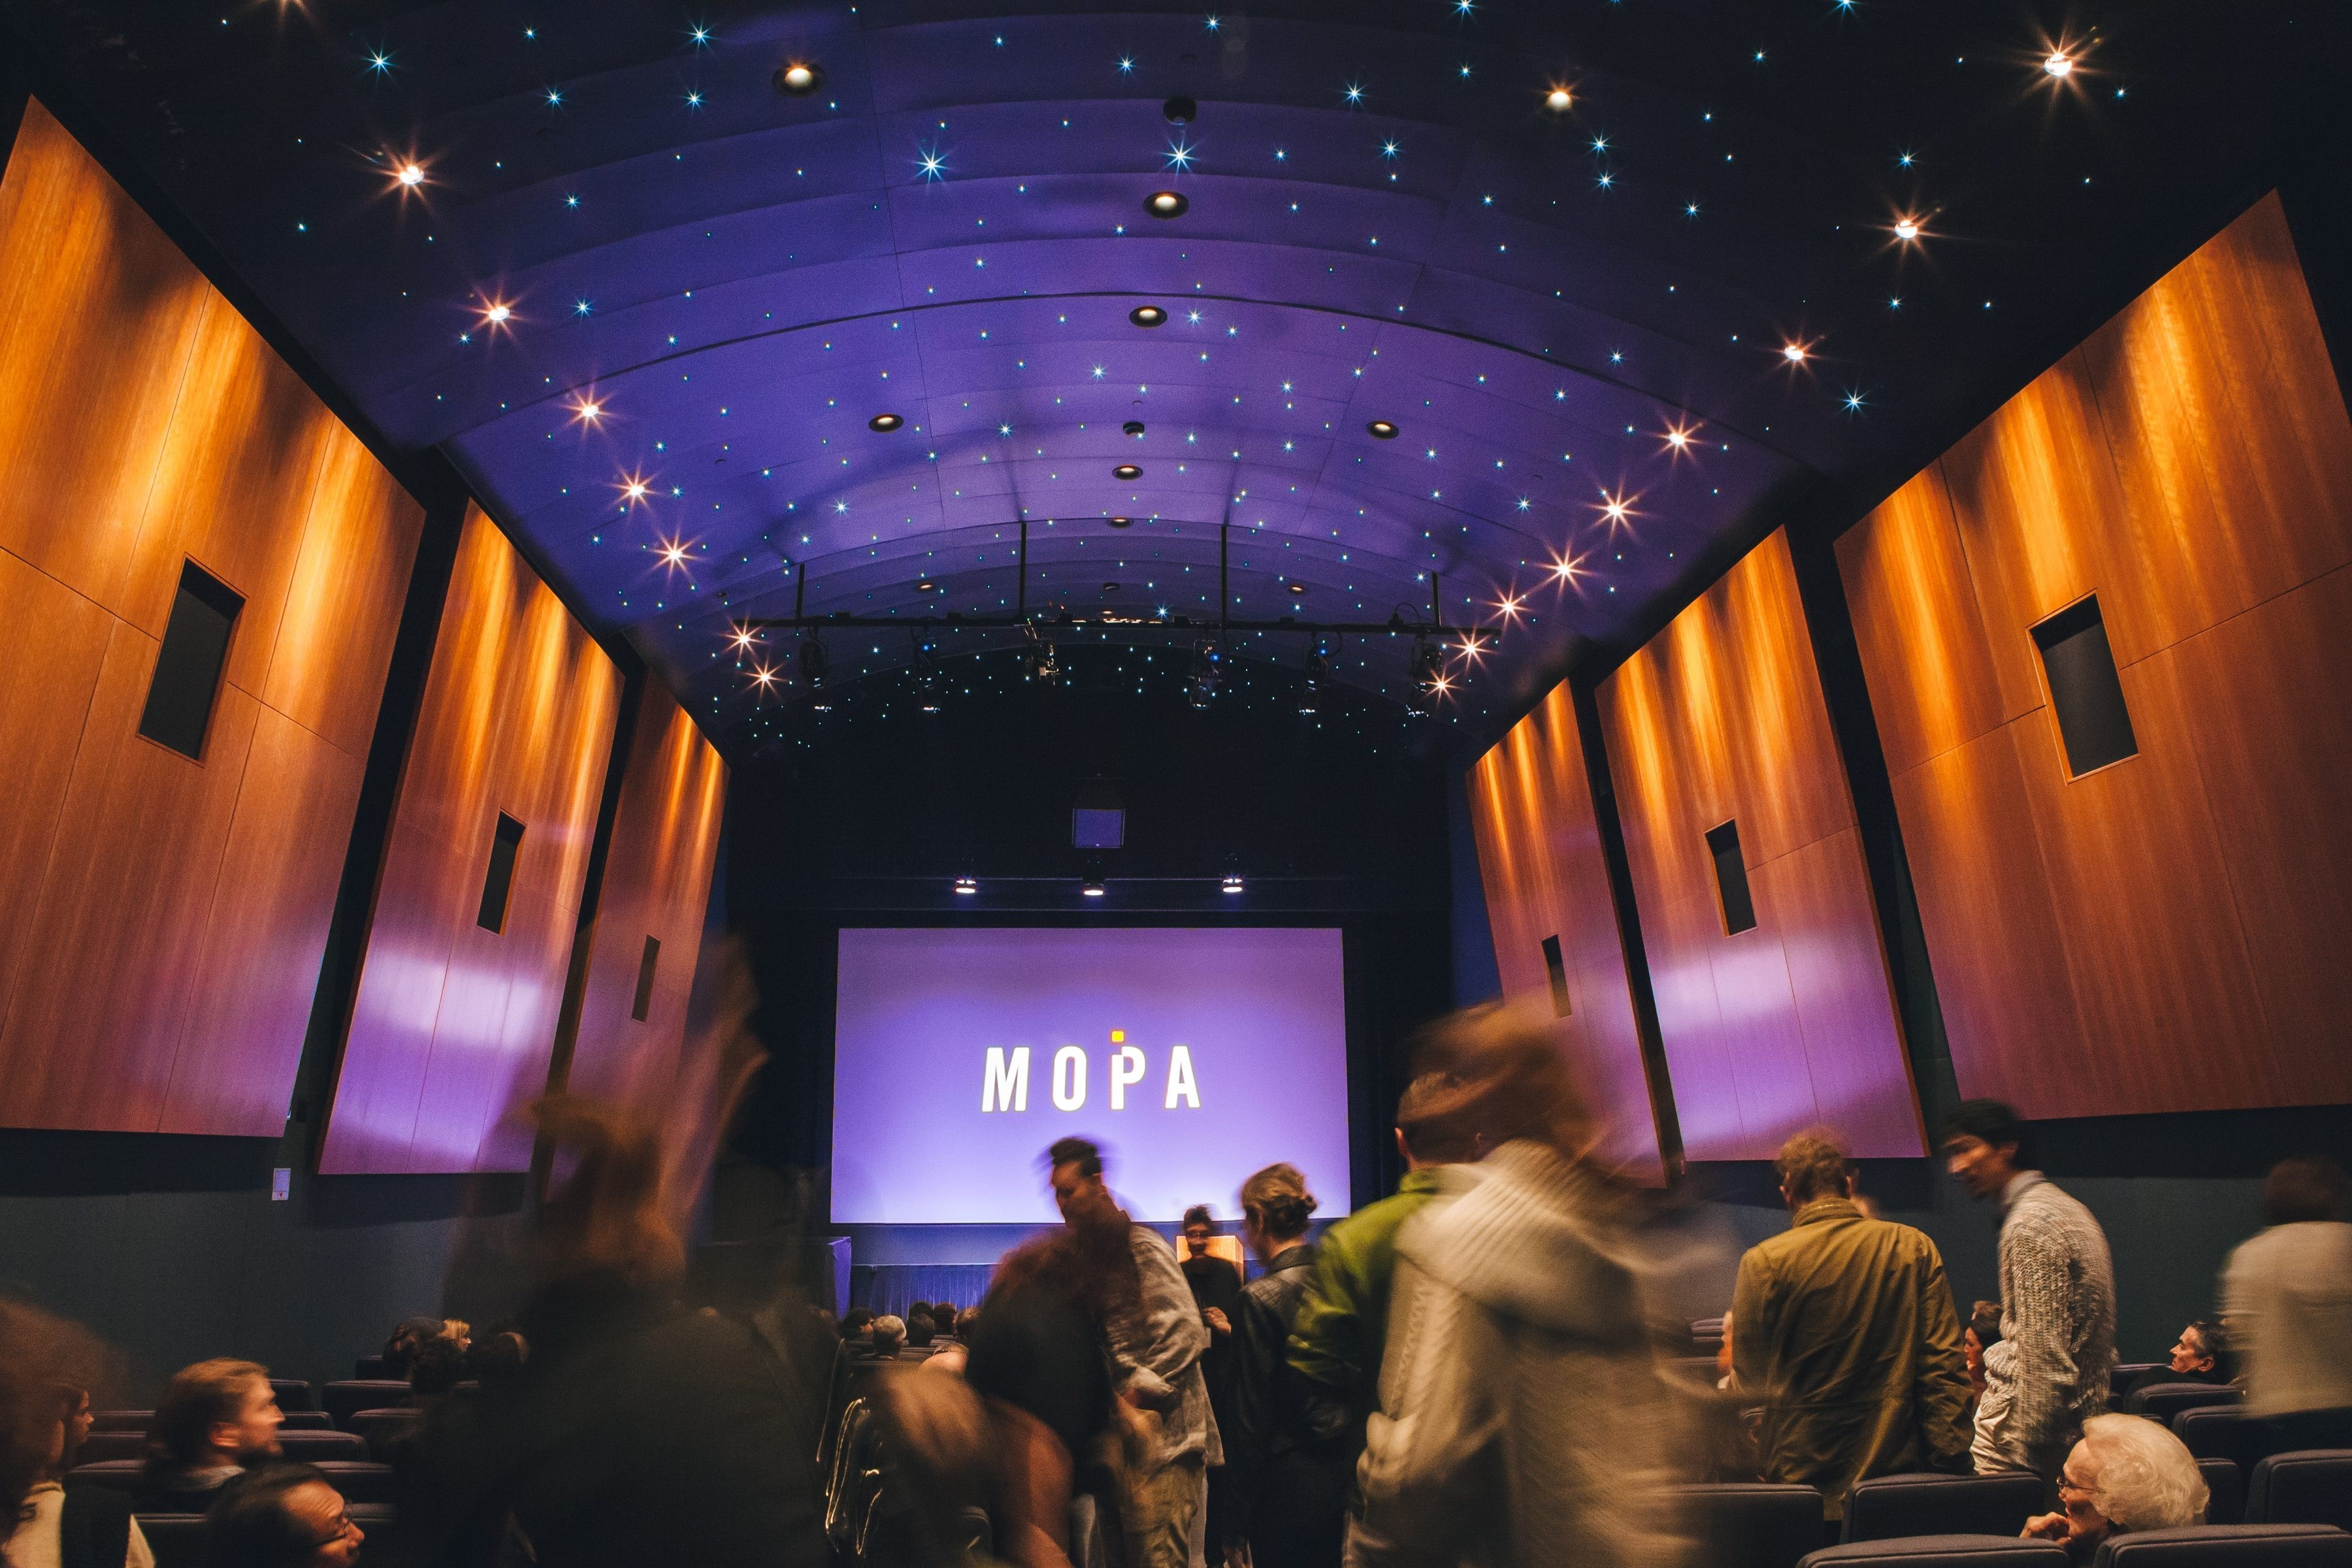 The Museum of Photographic Arts (MOPA) puts on regular film festivals and other landmark film showings. (Courtesy MOPA)